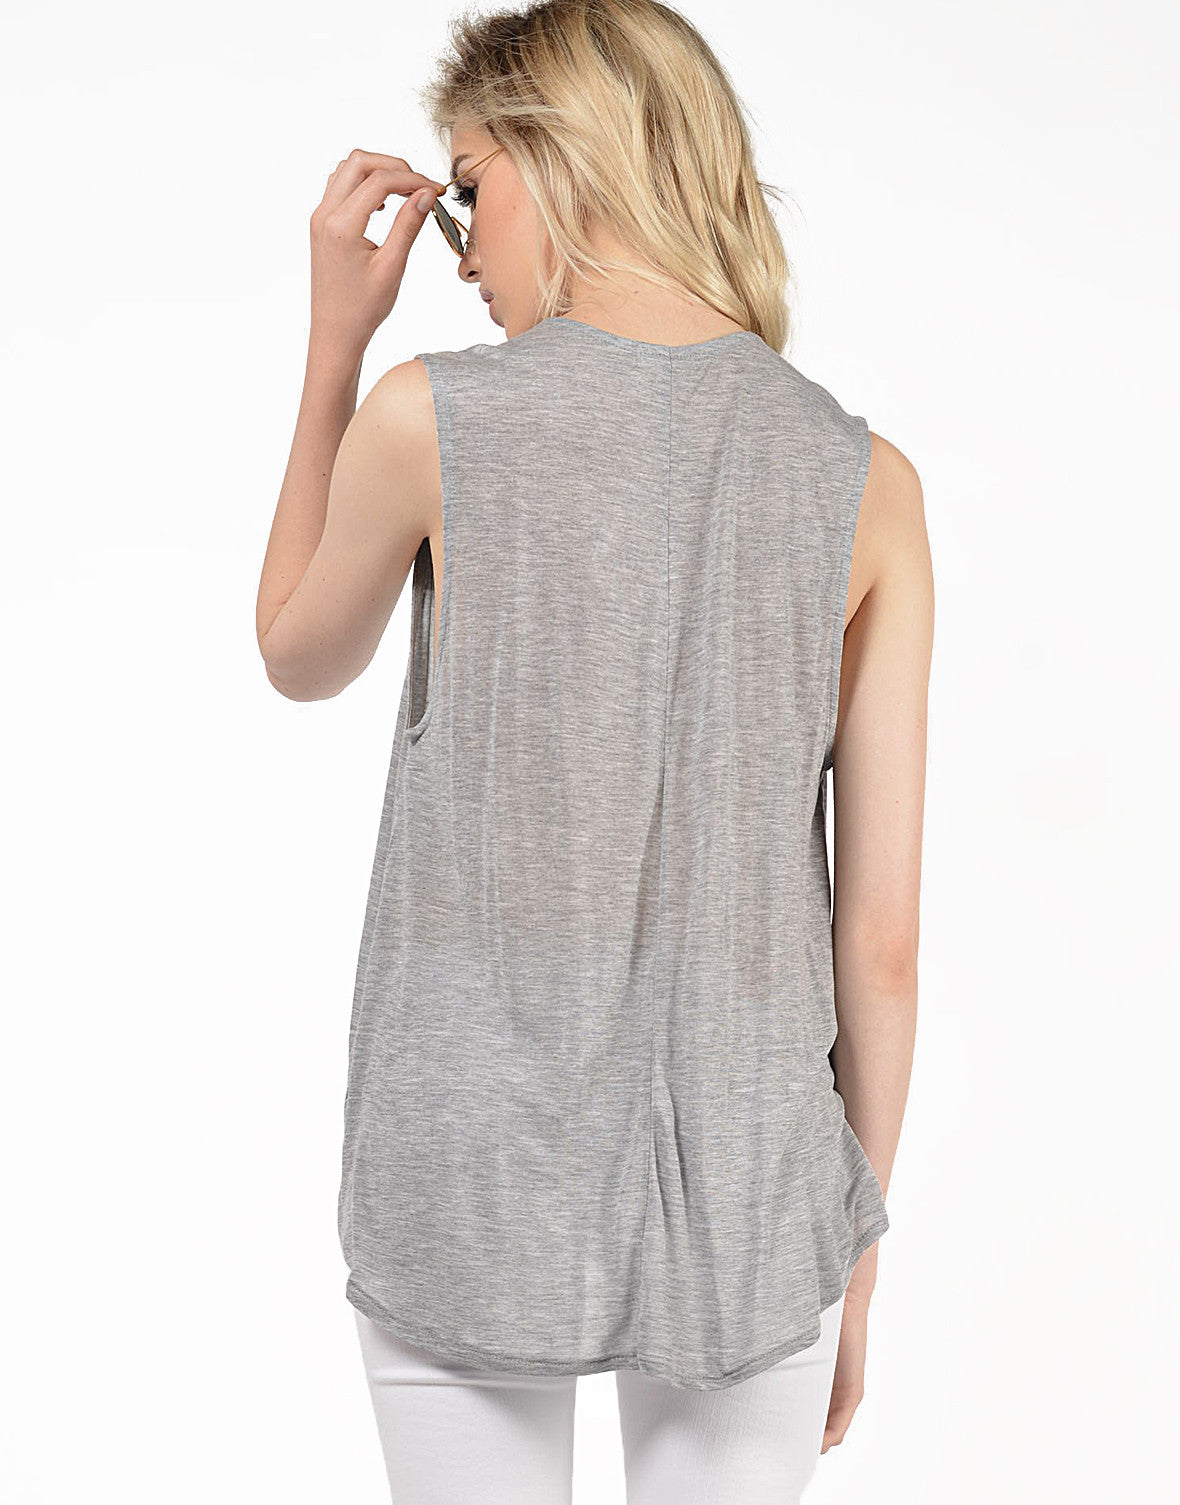 Back View of Deep V Draped Top